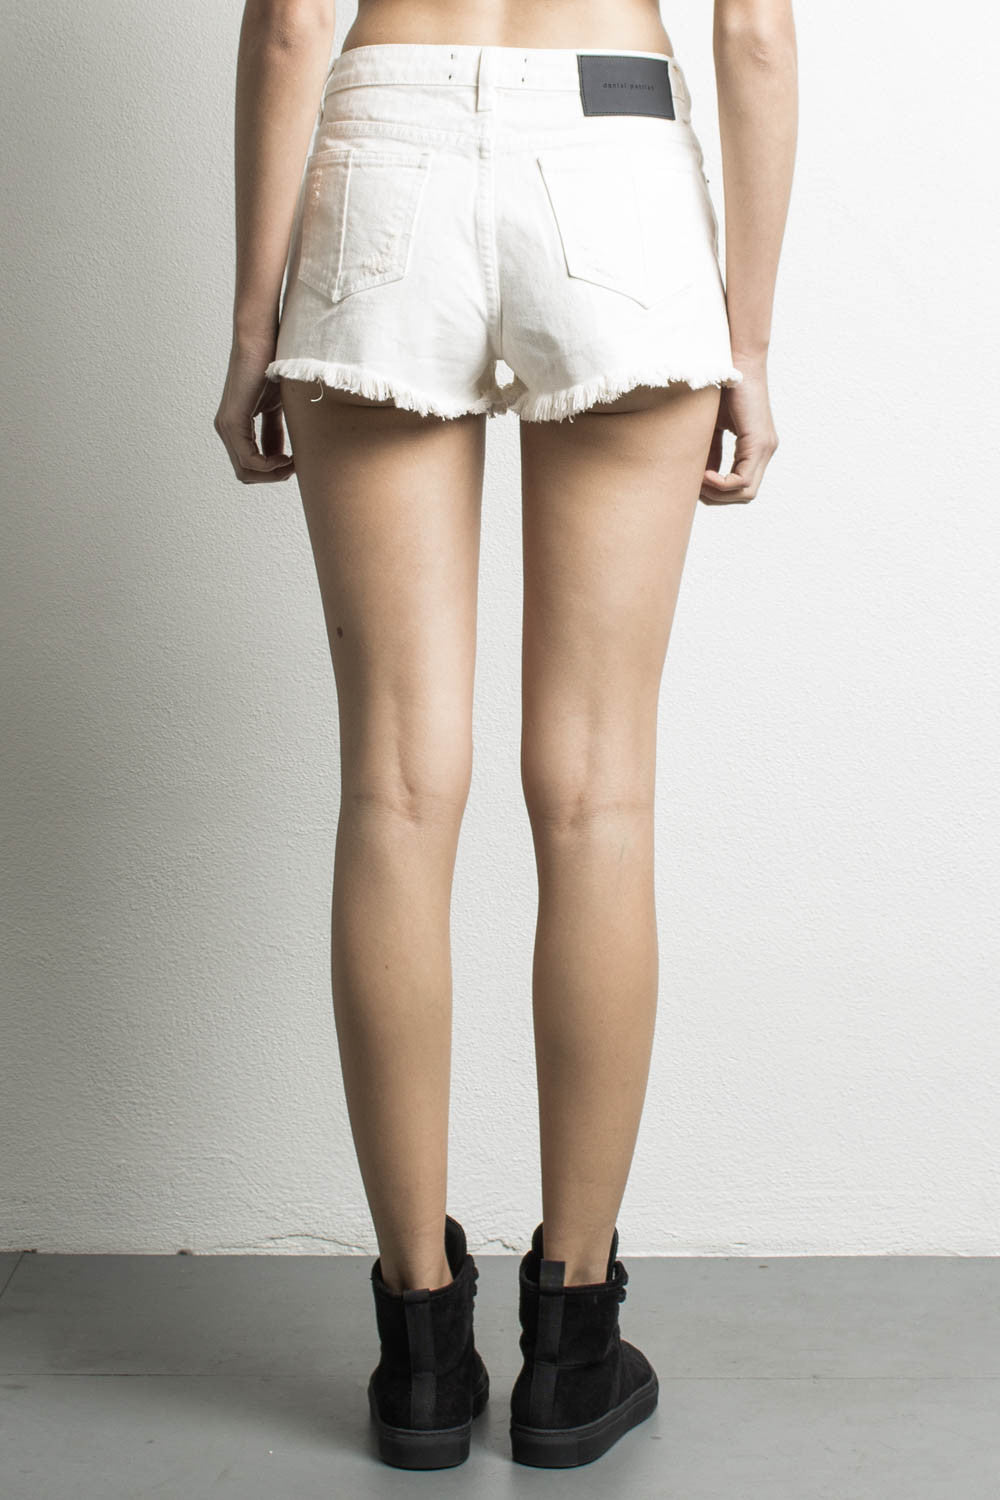 096b6804e9 DANIEL PATRICK | HIGH WAISTED DENIM SHORTS, WHITE - DANIEL PATRICK ...